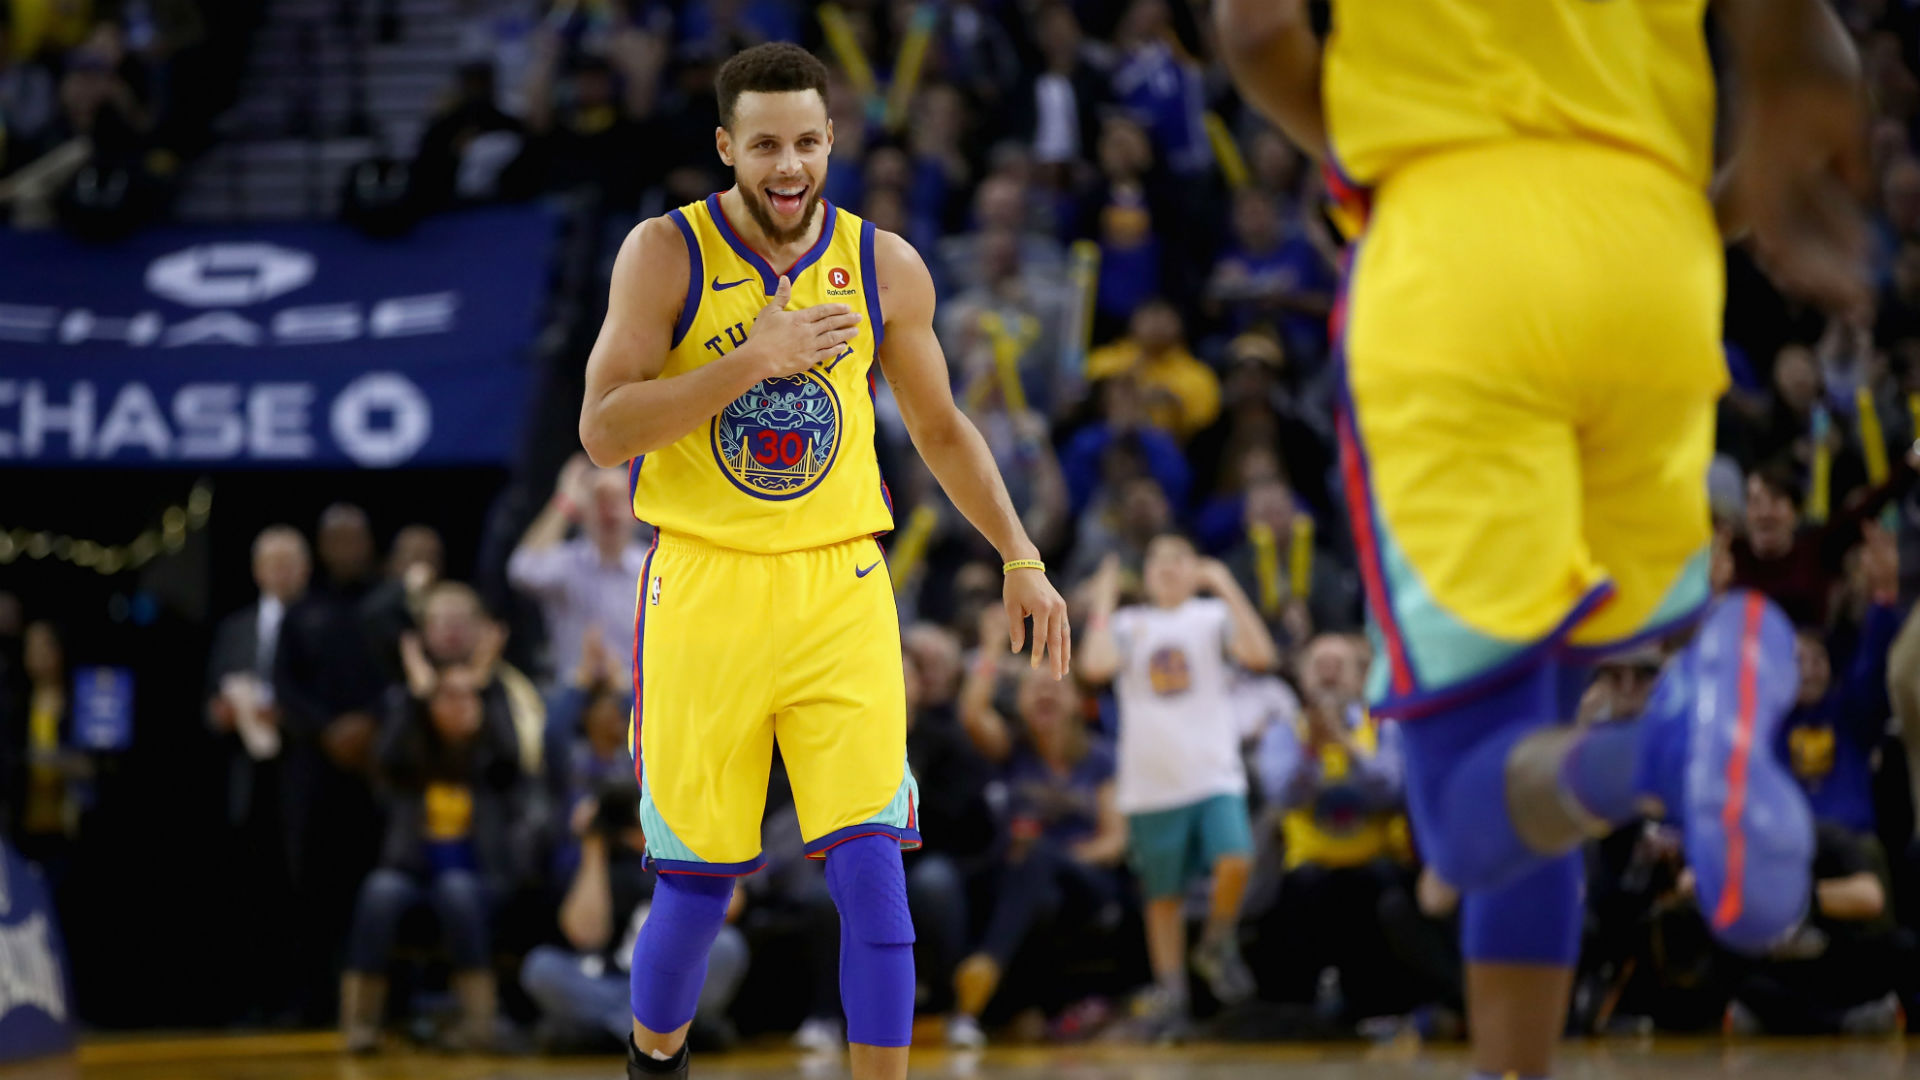 Spurs to open playoffs at Warriors after loss in regular season finale